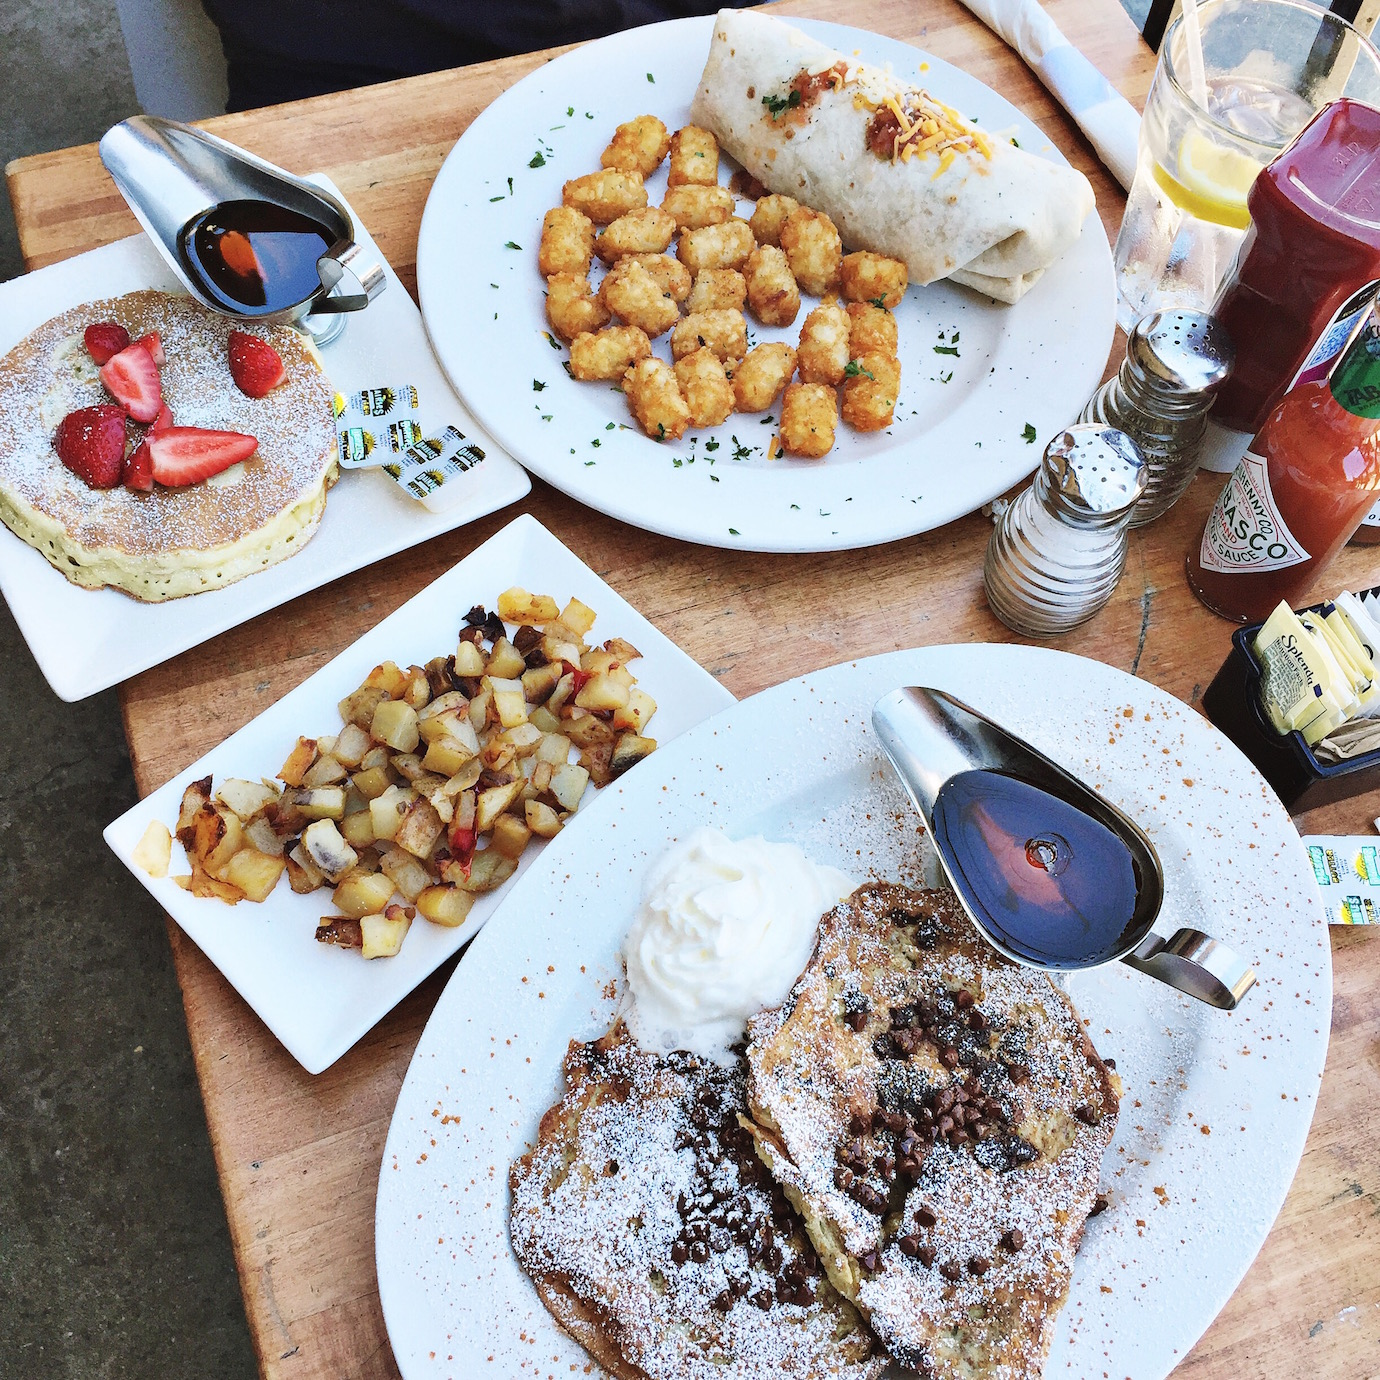 Blondie in the City | Instagram @HayleyLarue | Food, Breakfast, French Toast | Great LA breakfast spot - Jack n Jills Too